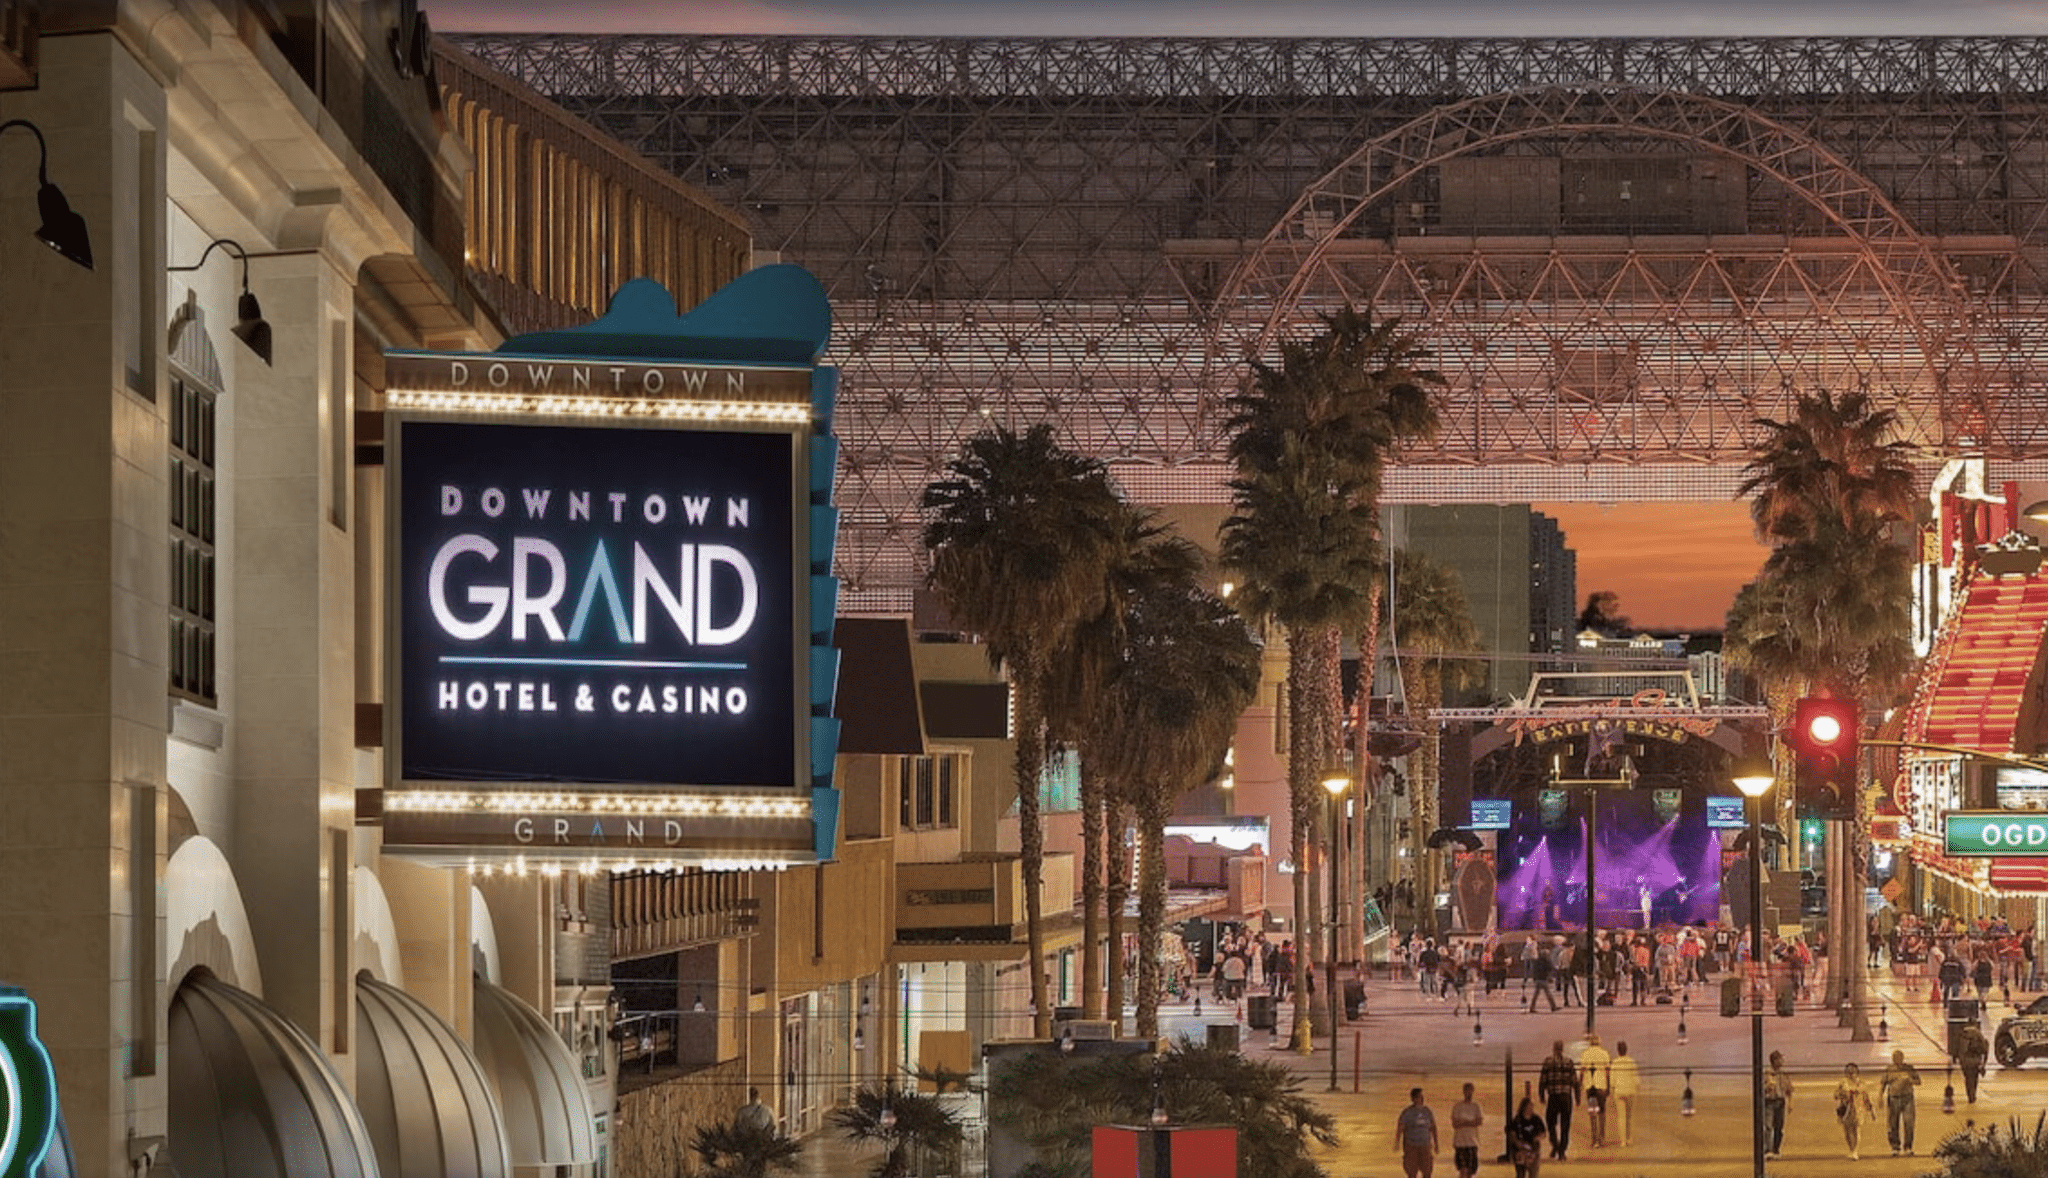 DOWNTOWN GRAND LV SIGN